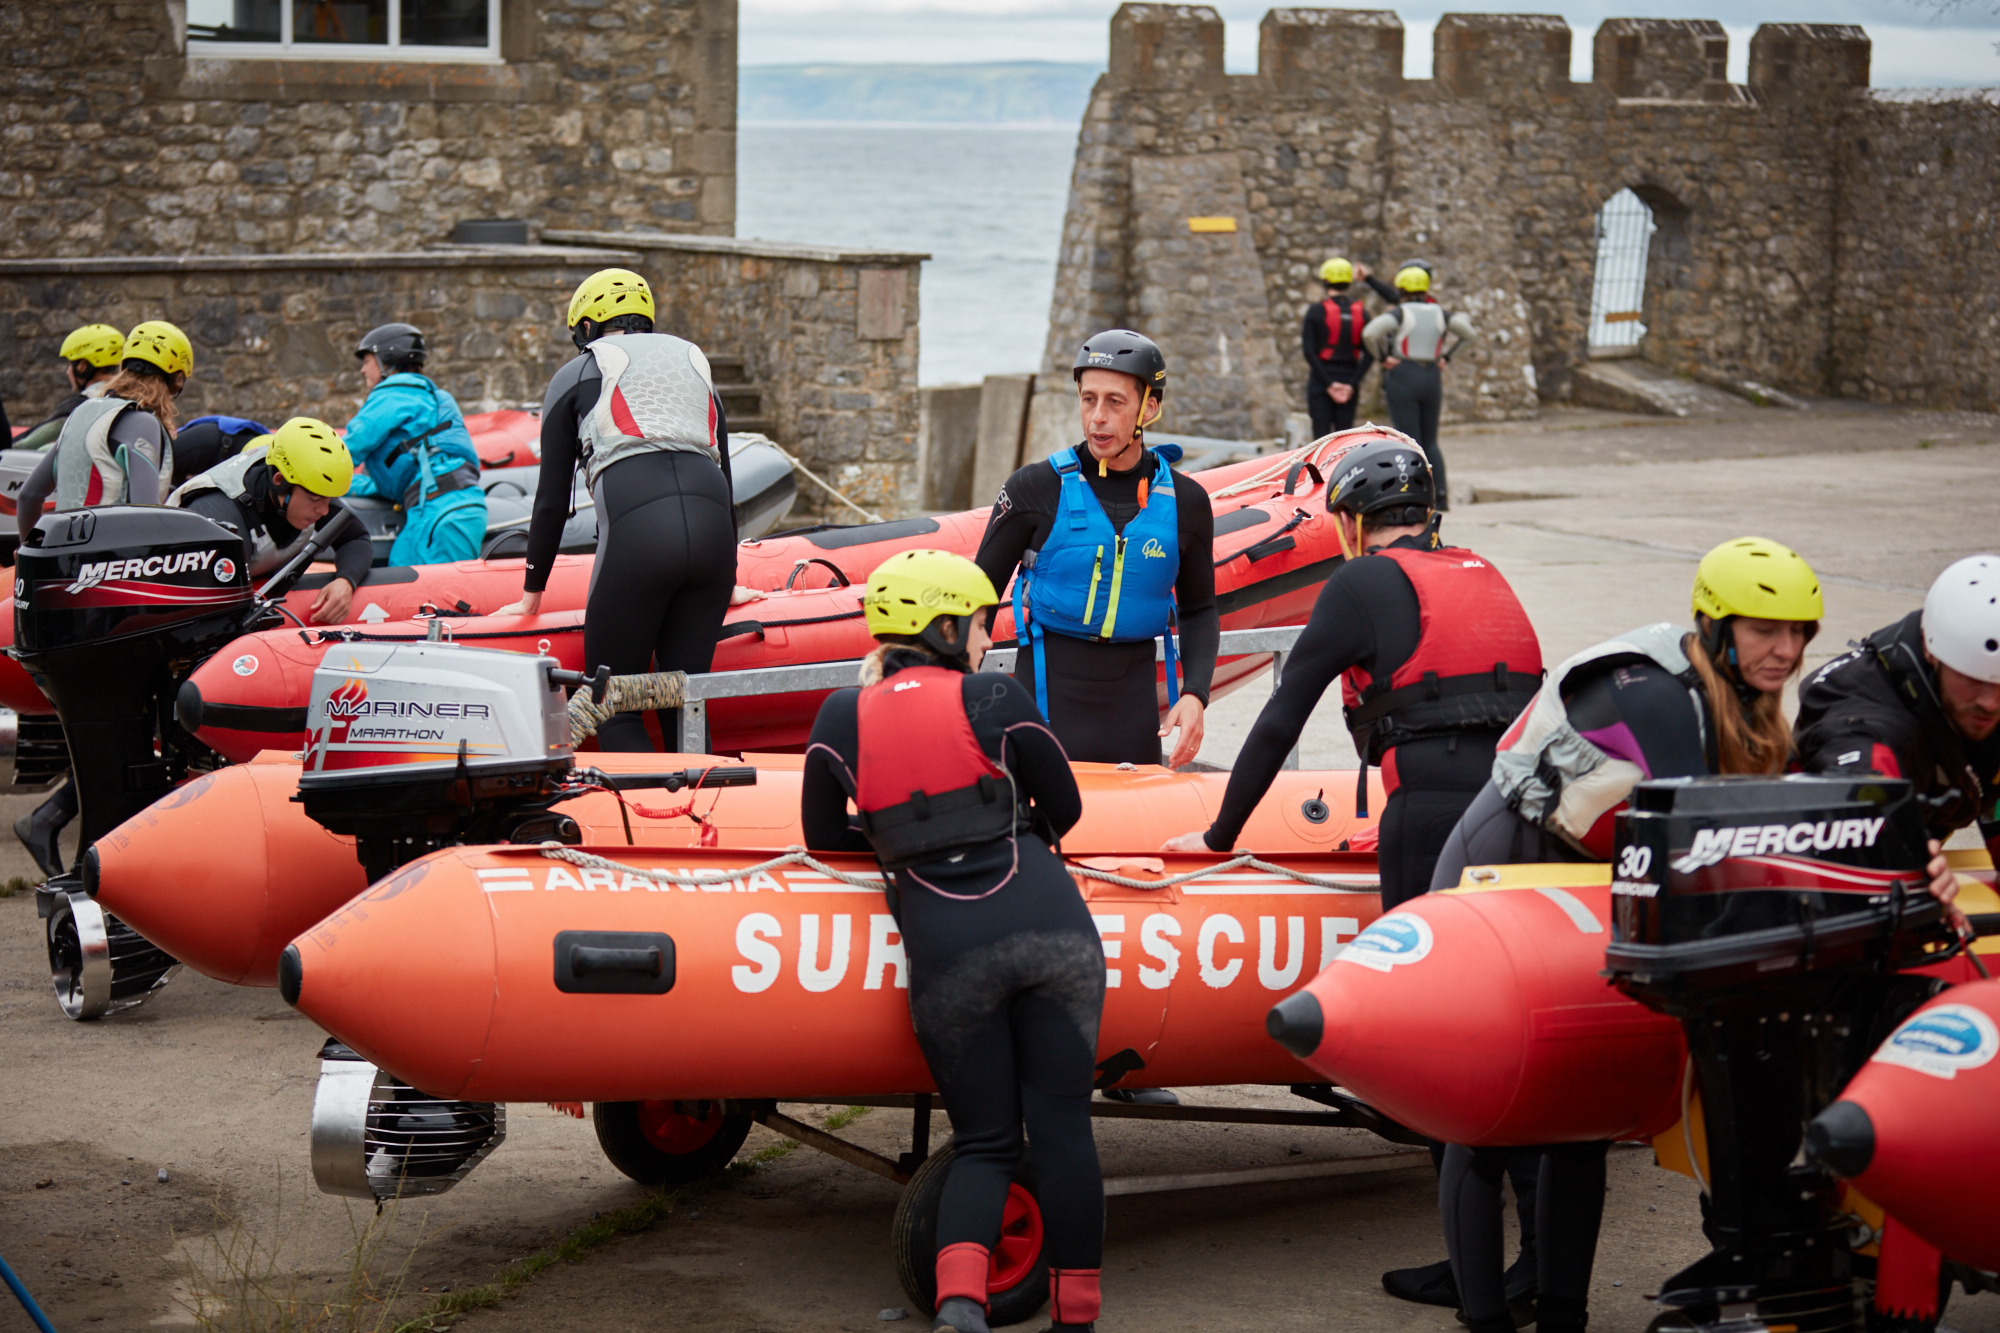 A group of people in wetsuits surrounding a group of four lifeboats